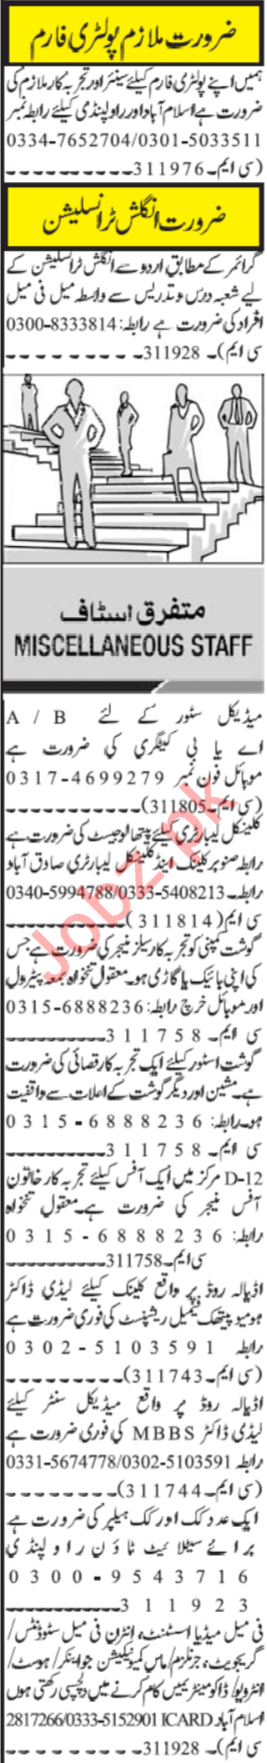 Daily Jang Miscellaneous Staff Jobs 2020 in Islamabad